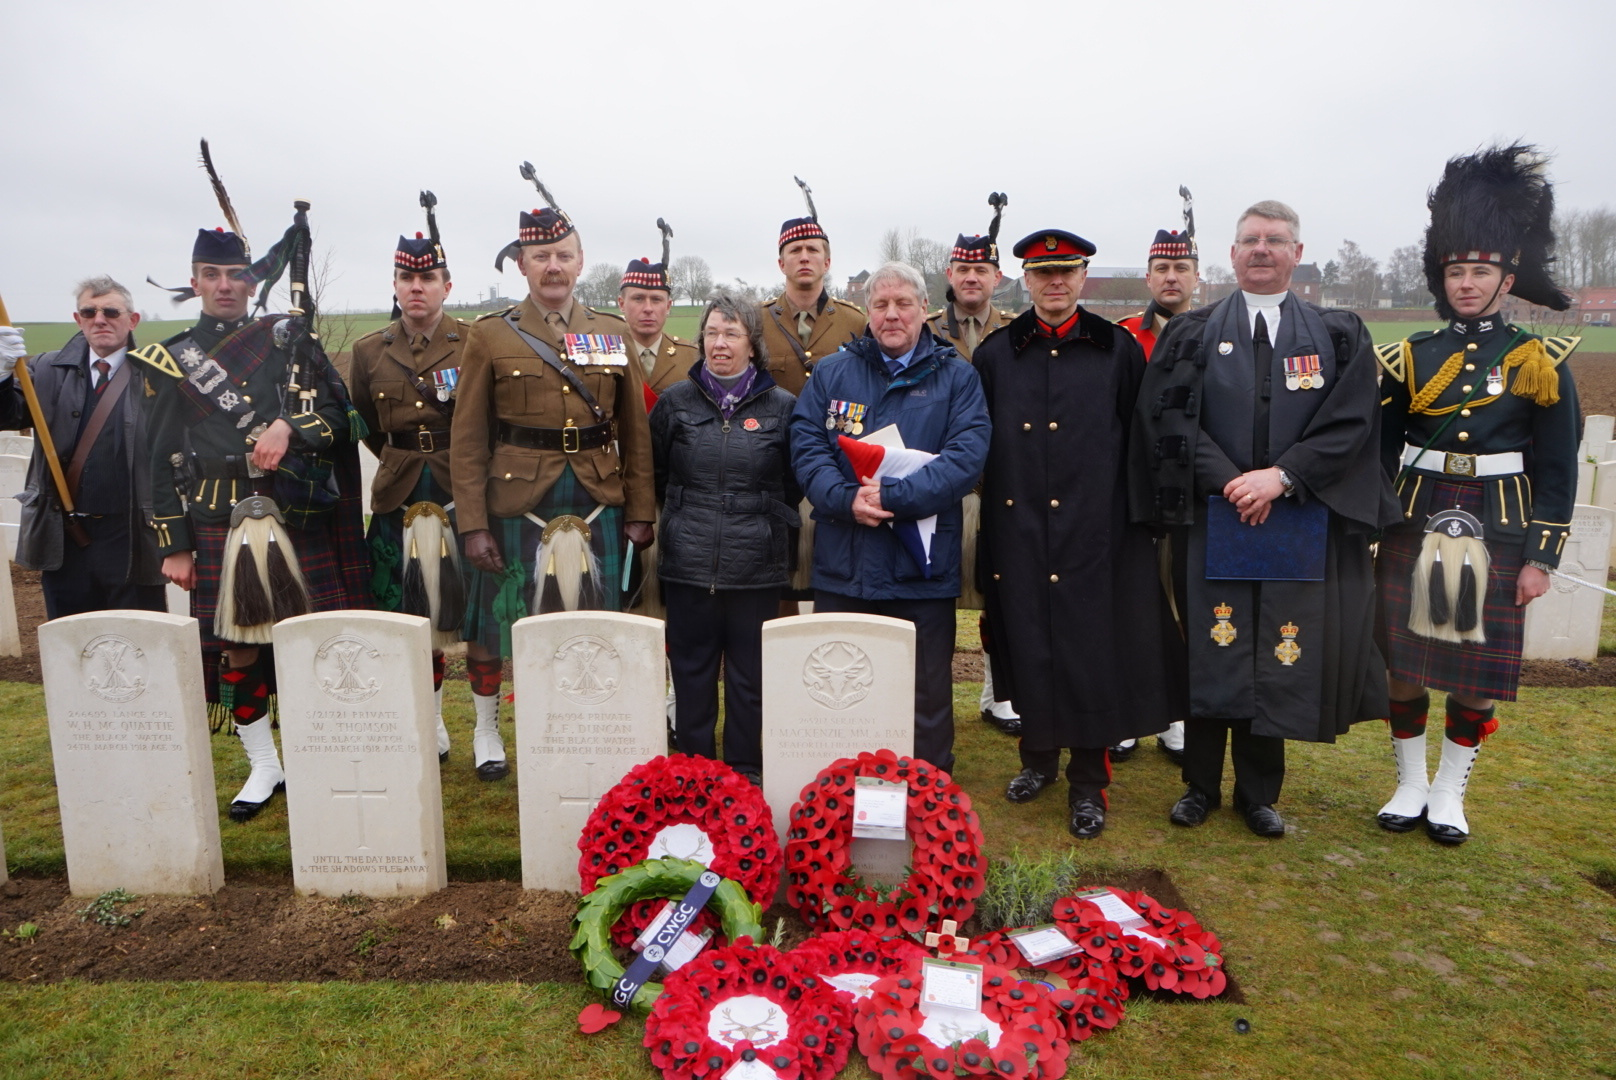 Ken and Kath MacDonald with the Reverend Paul van Sittert and members of the Royal Regiment of Scotland at the service.